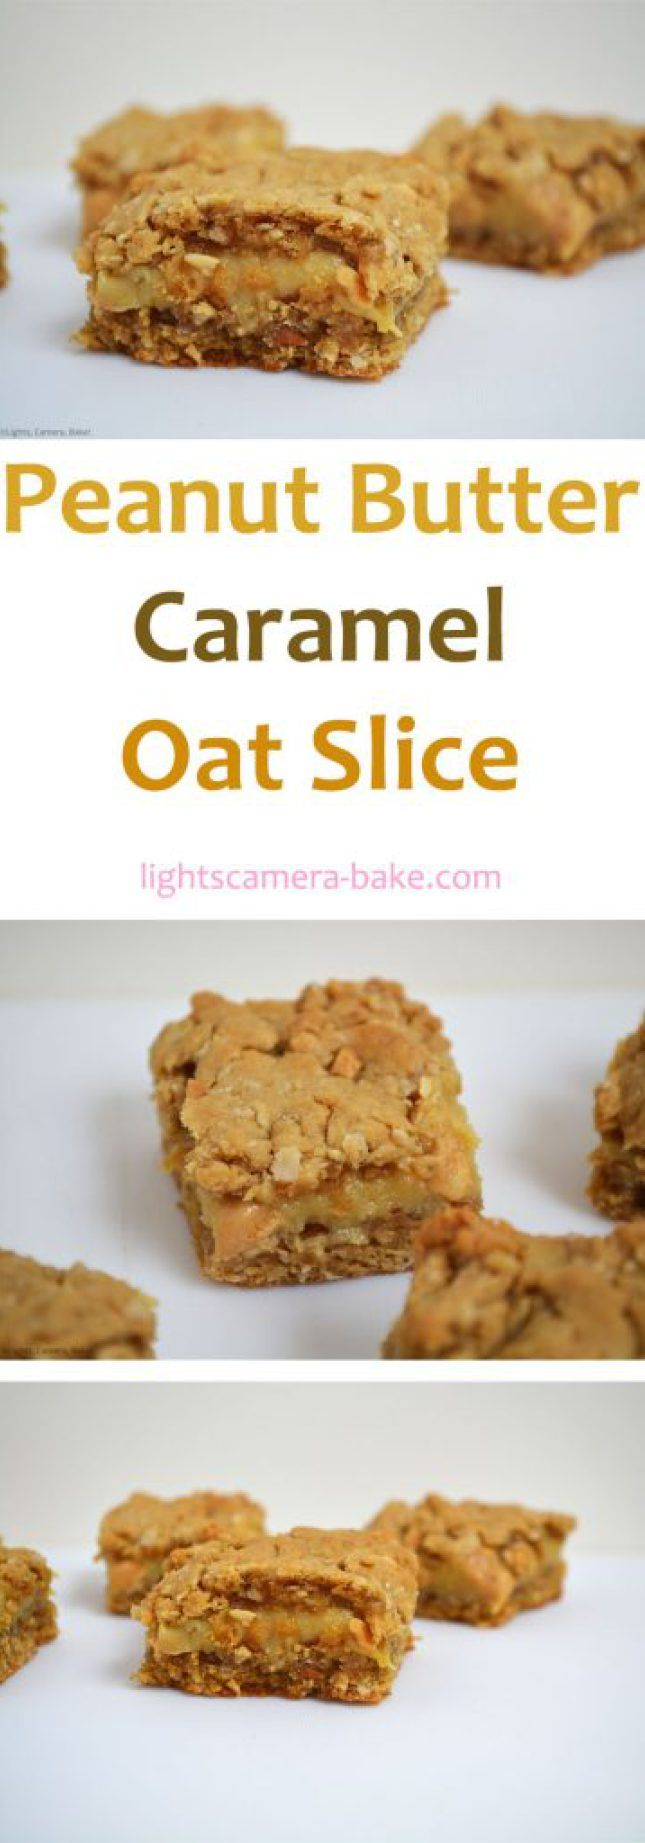 Peanut Butter Caramel Oat Slice has a crunchy and chewy peanut butter oat base and top with pockets of peanut butter gooey, buttery caramel in the middle.